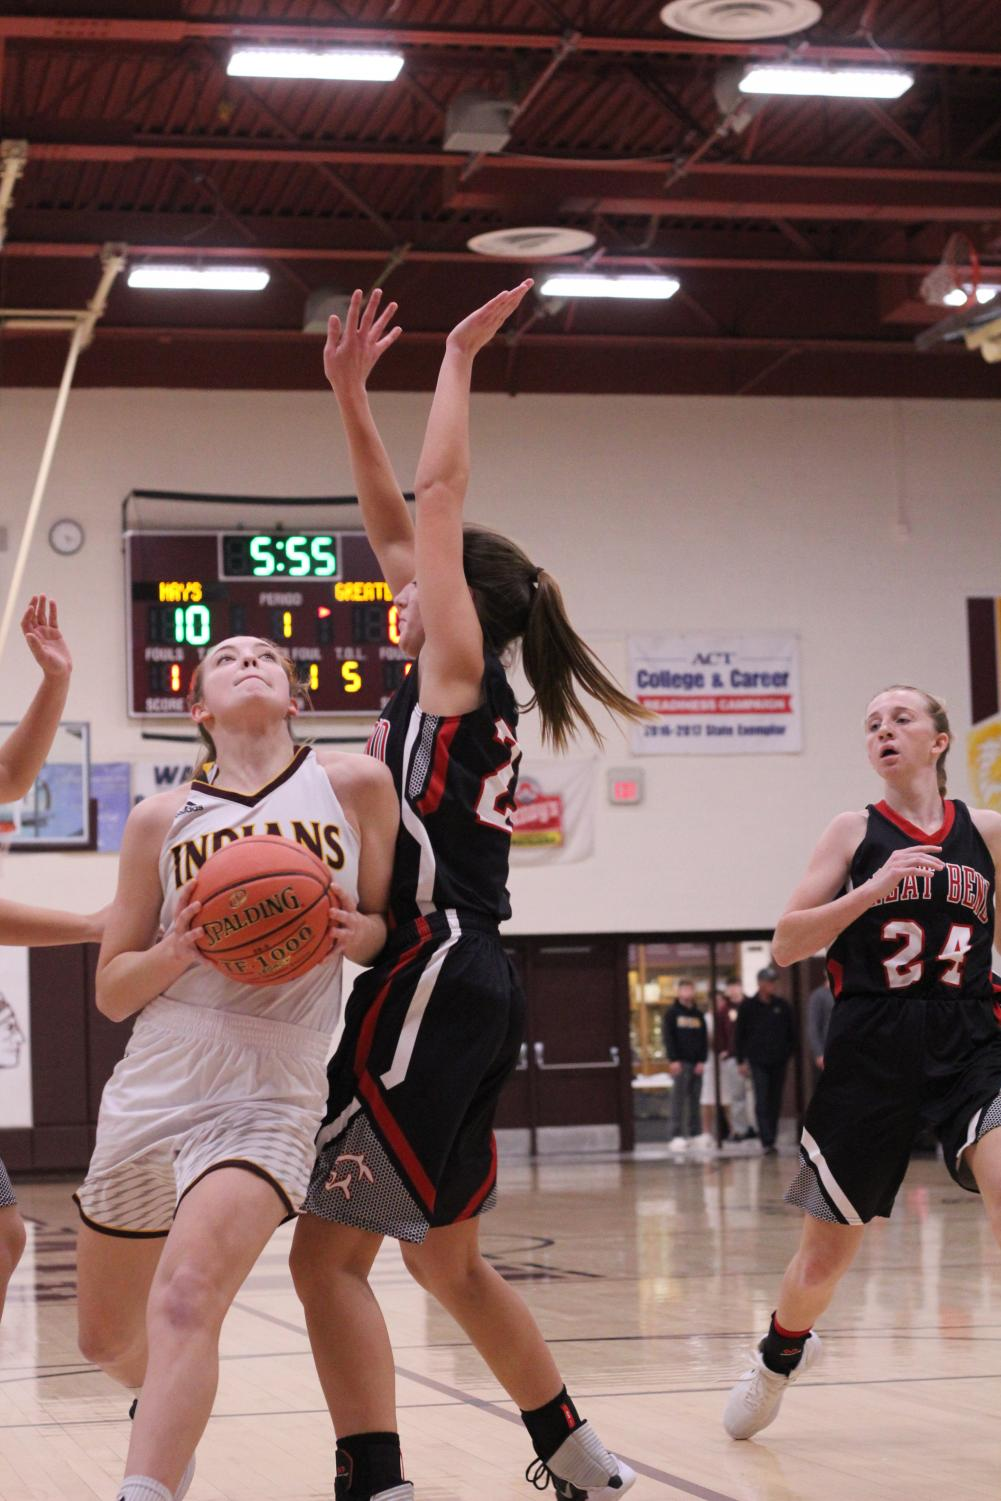 Senior Savannah Scheider attempts to score at a home against the Panthers. The Indians will play the Great Bend Panthers on Feb. 5.